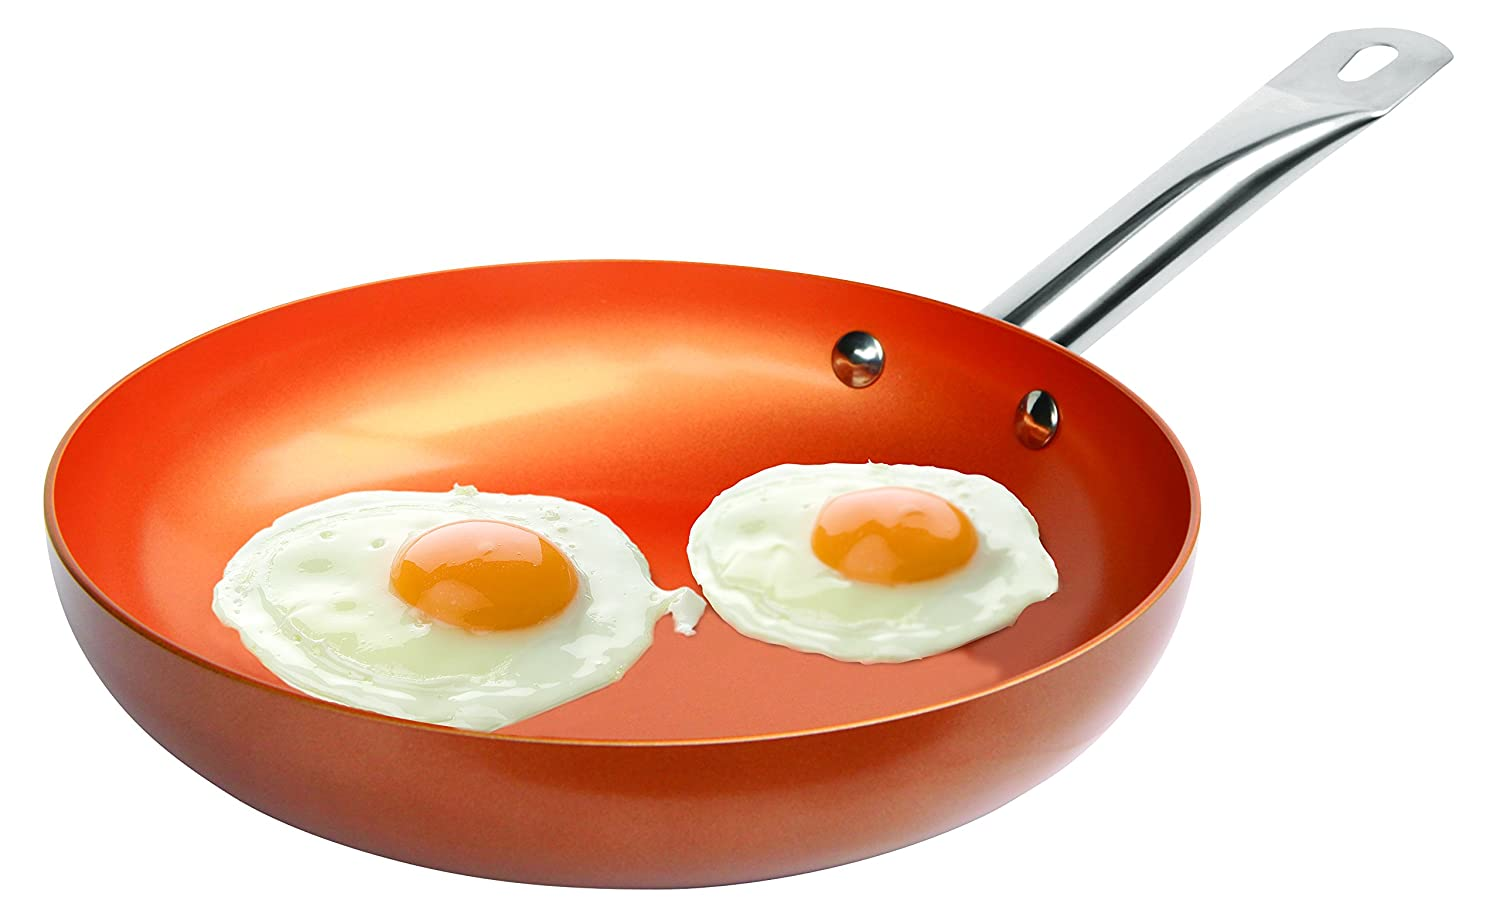 Non-stick Copper Frying Pan with Ceramic Coating, 9.5 Inches By